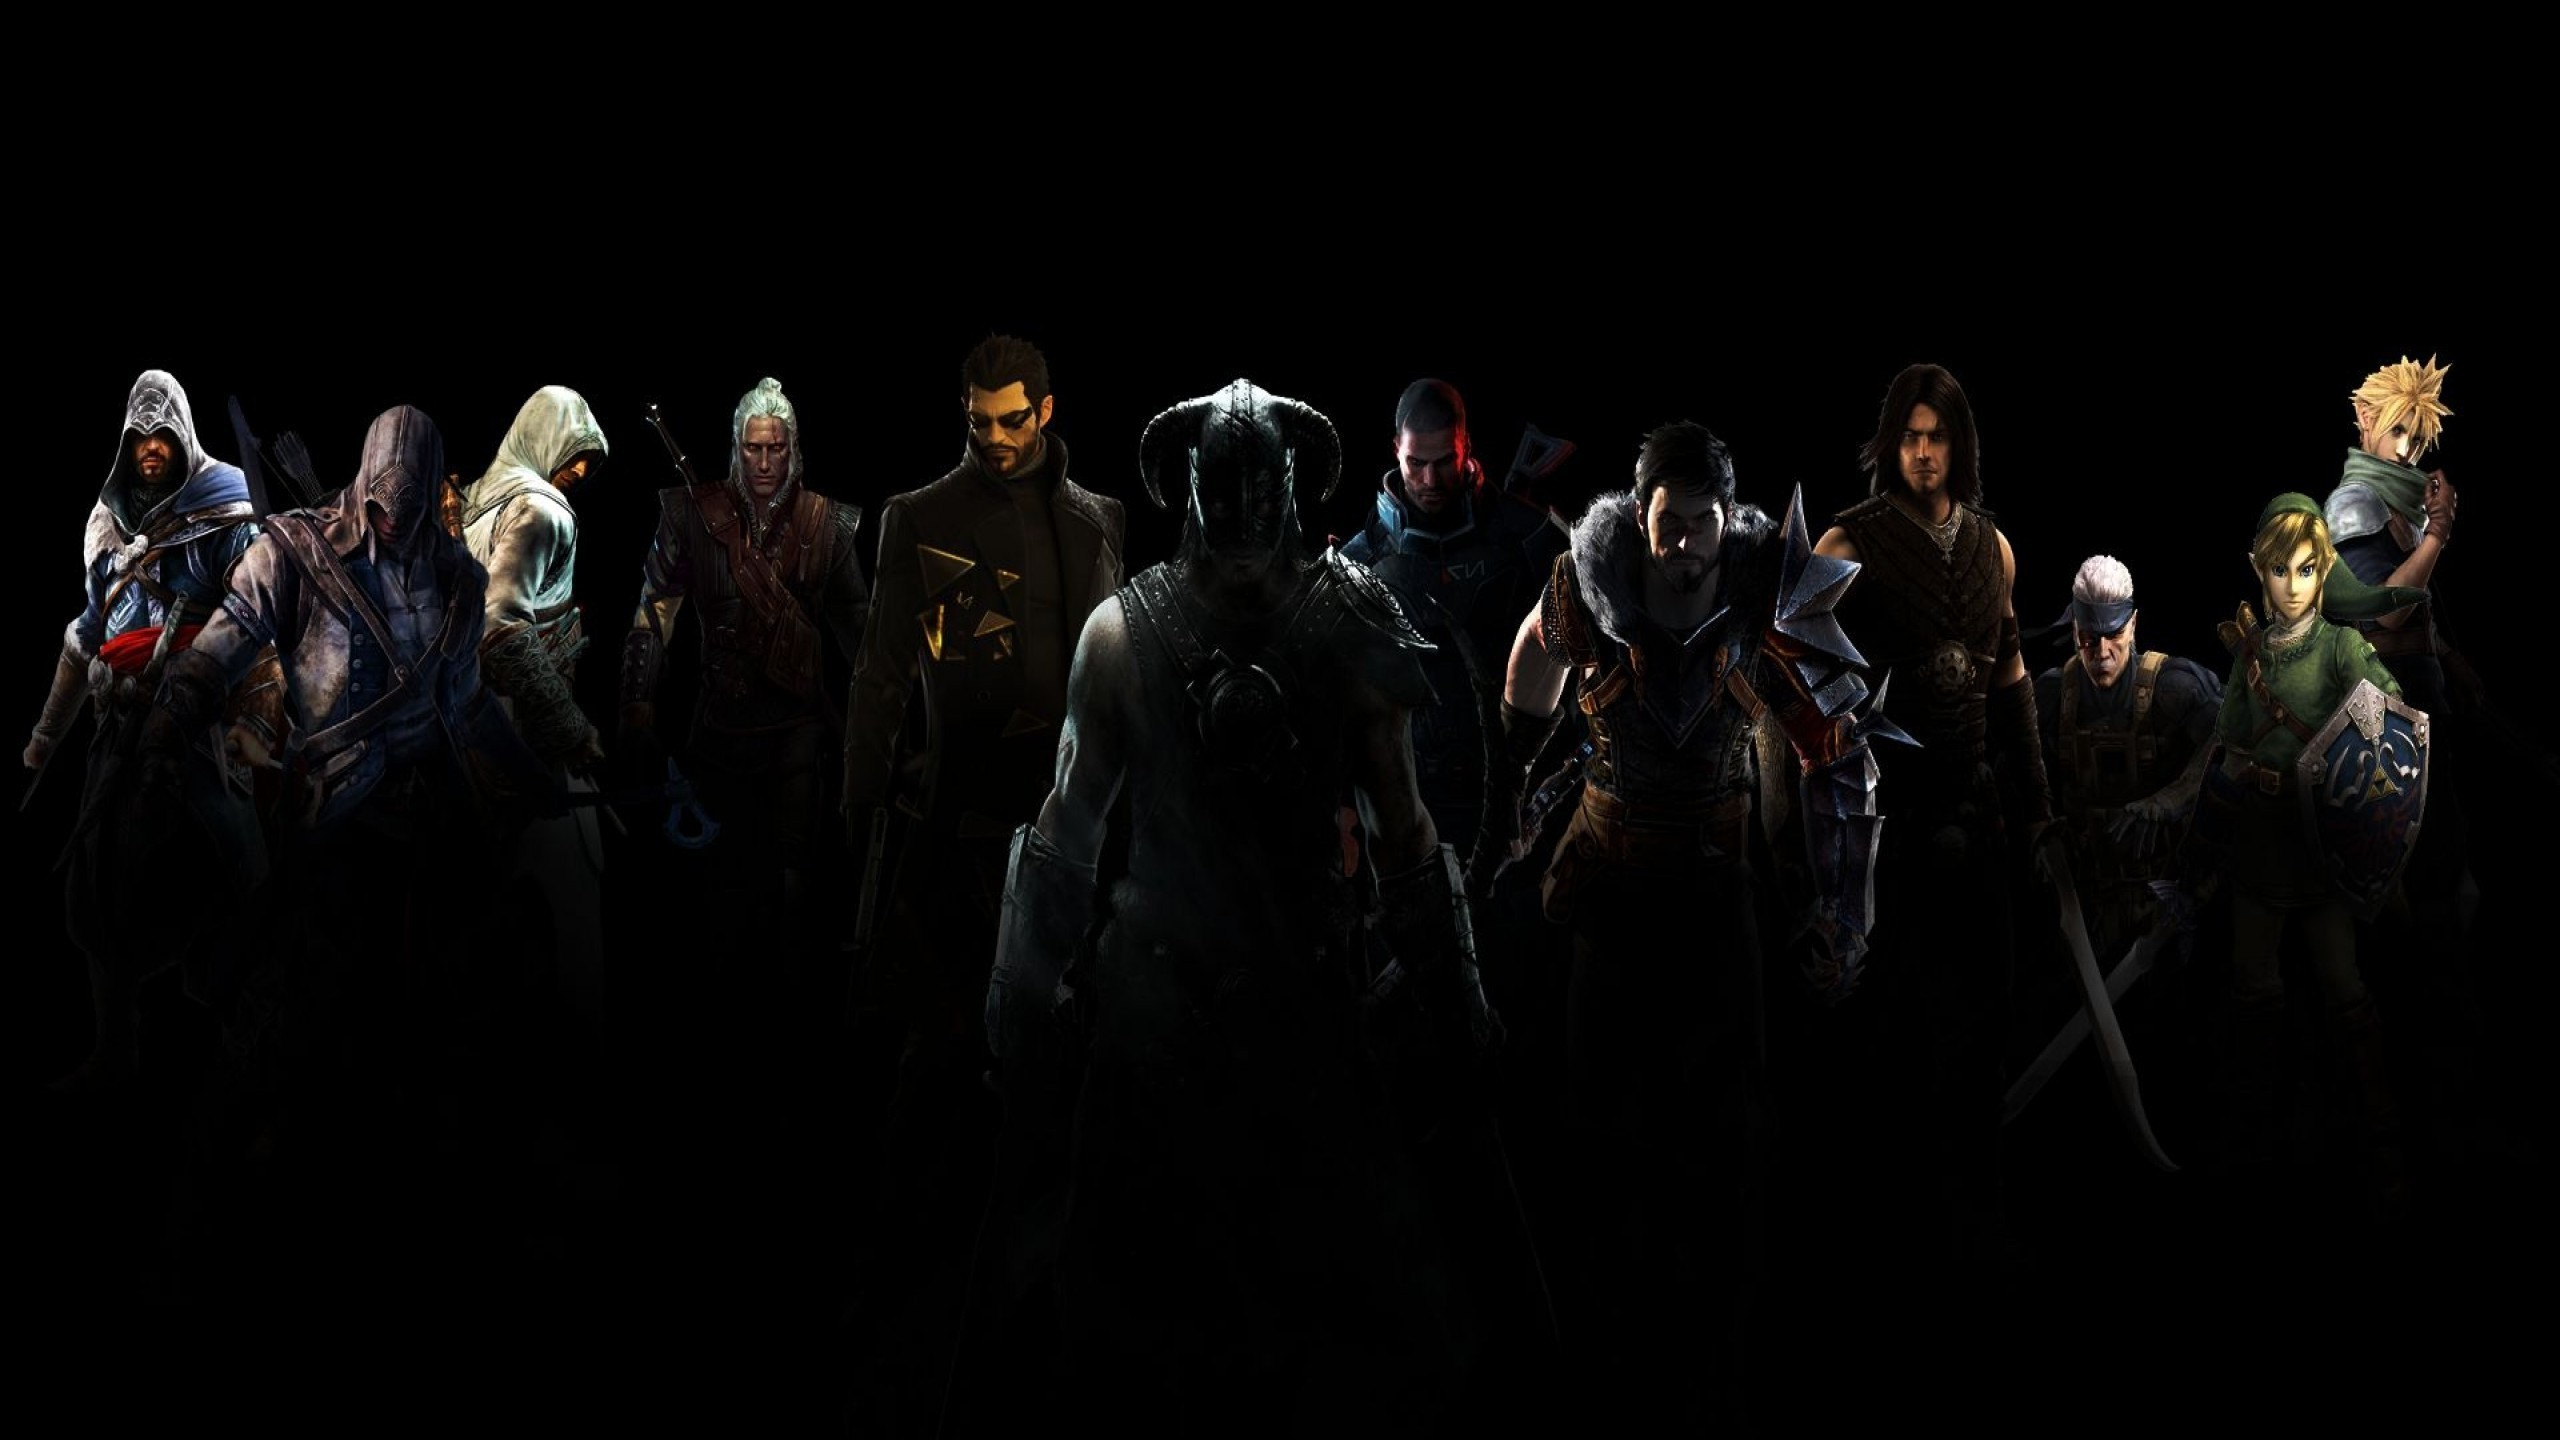 Download Game protagonists wallpaper